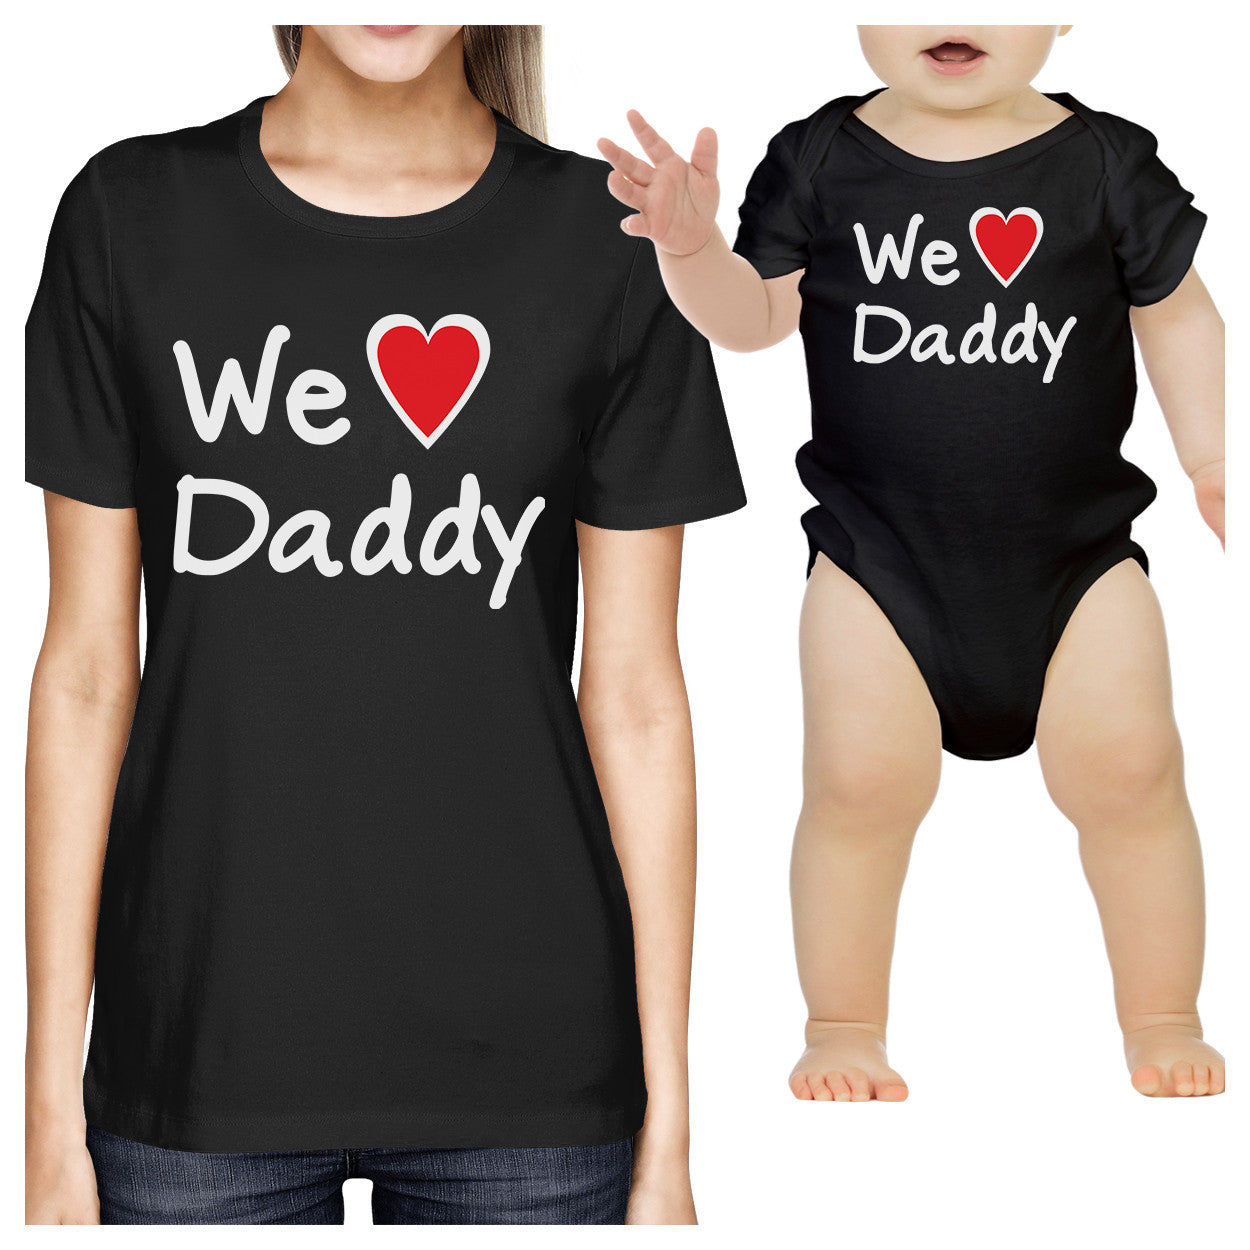 942558476 We Love Daddy Black Mom and Baby Matching Outfits Fathers Day Gifts ...